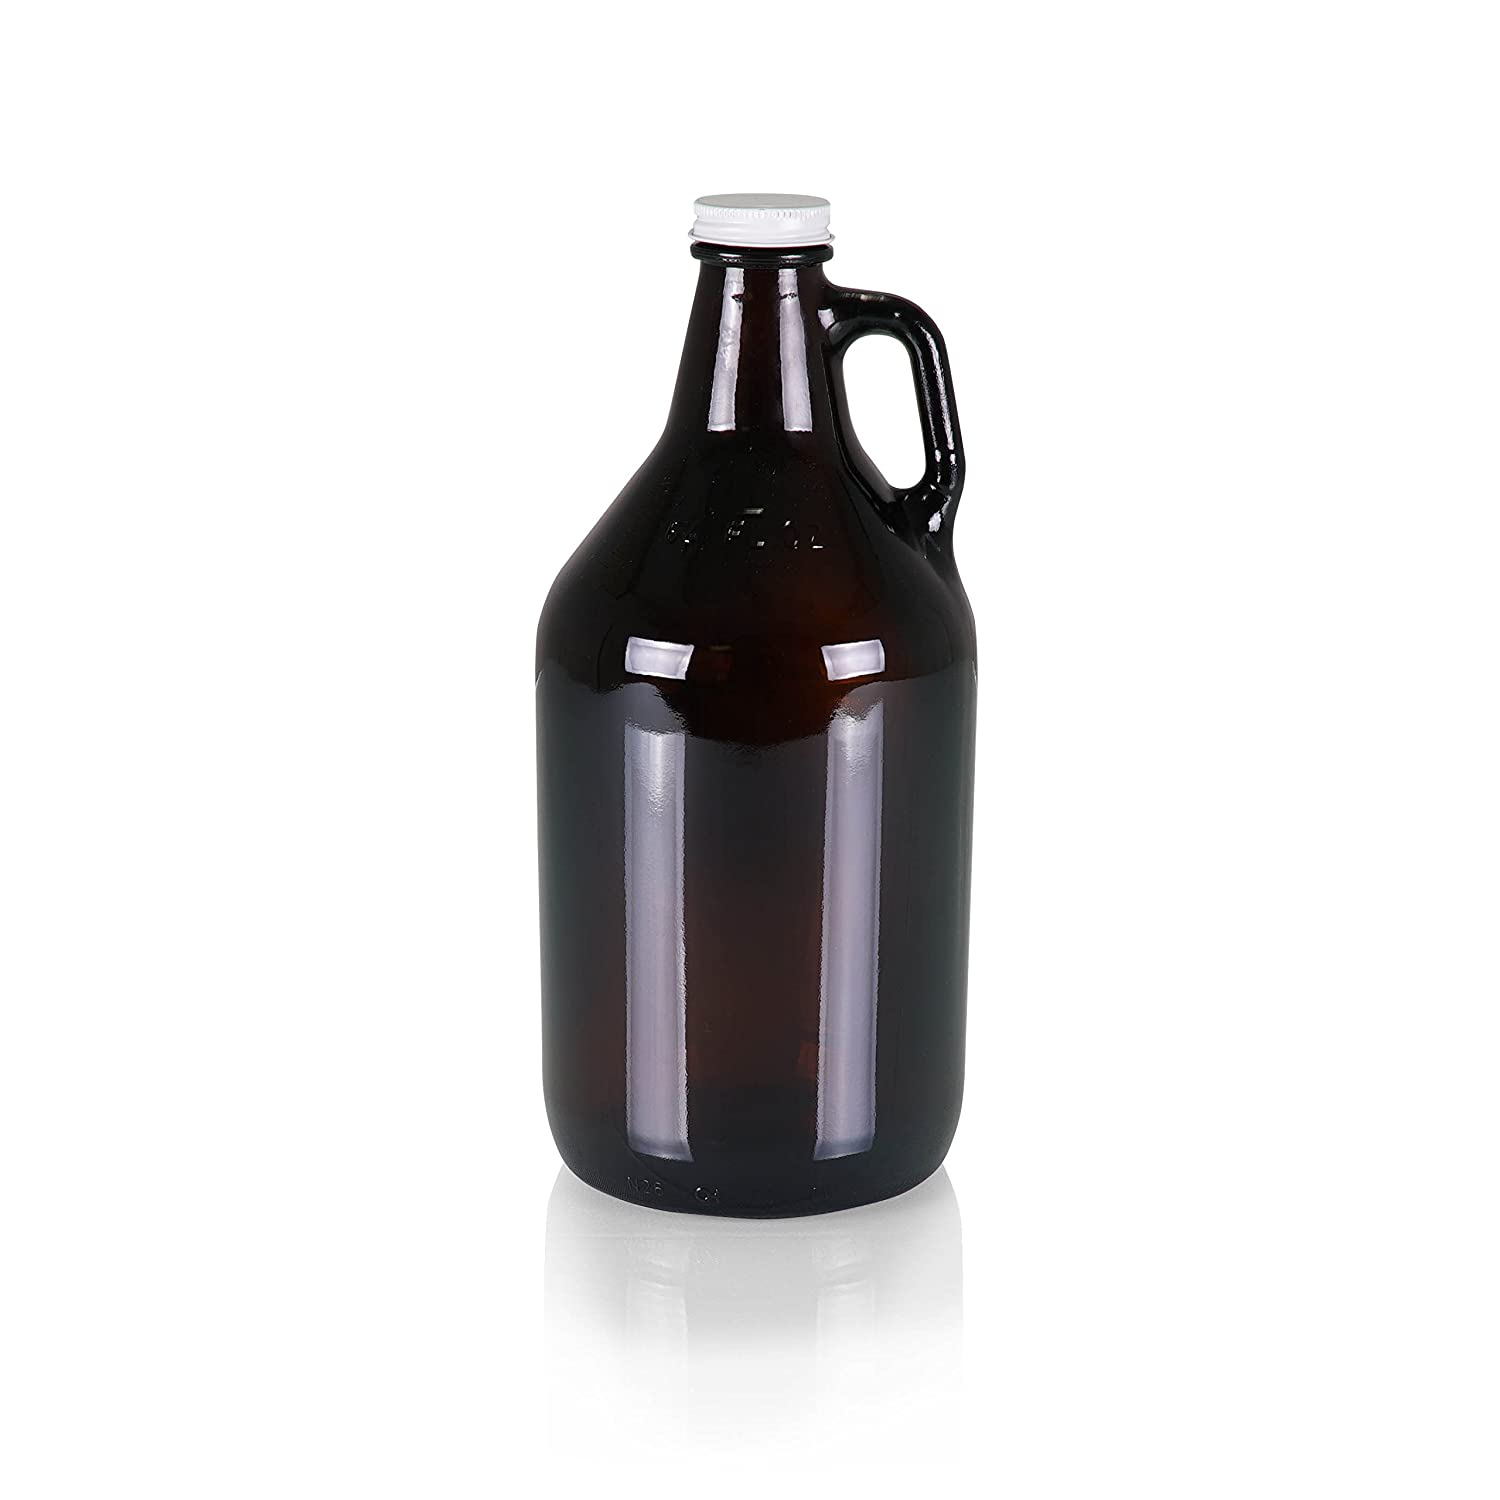 Legacy-A Picnic Time Brand Amber Glass Growler Jug with Handle and Steel Twist Off Lid, 64-Ounce 104-00-610-000-0